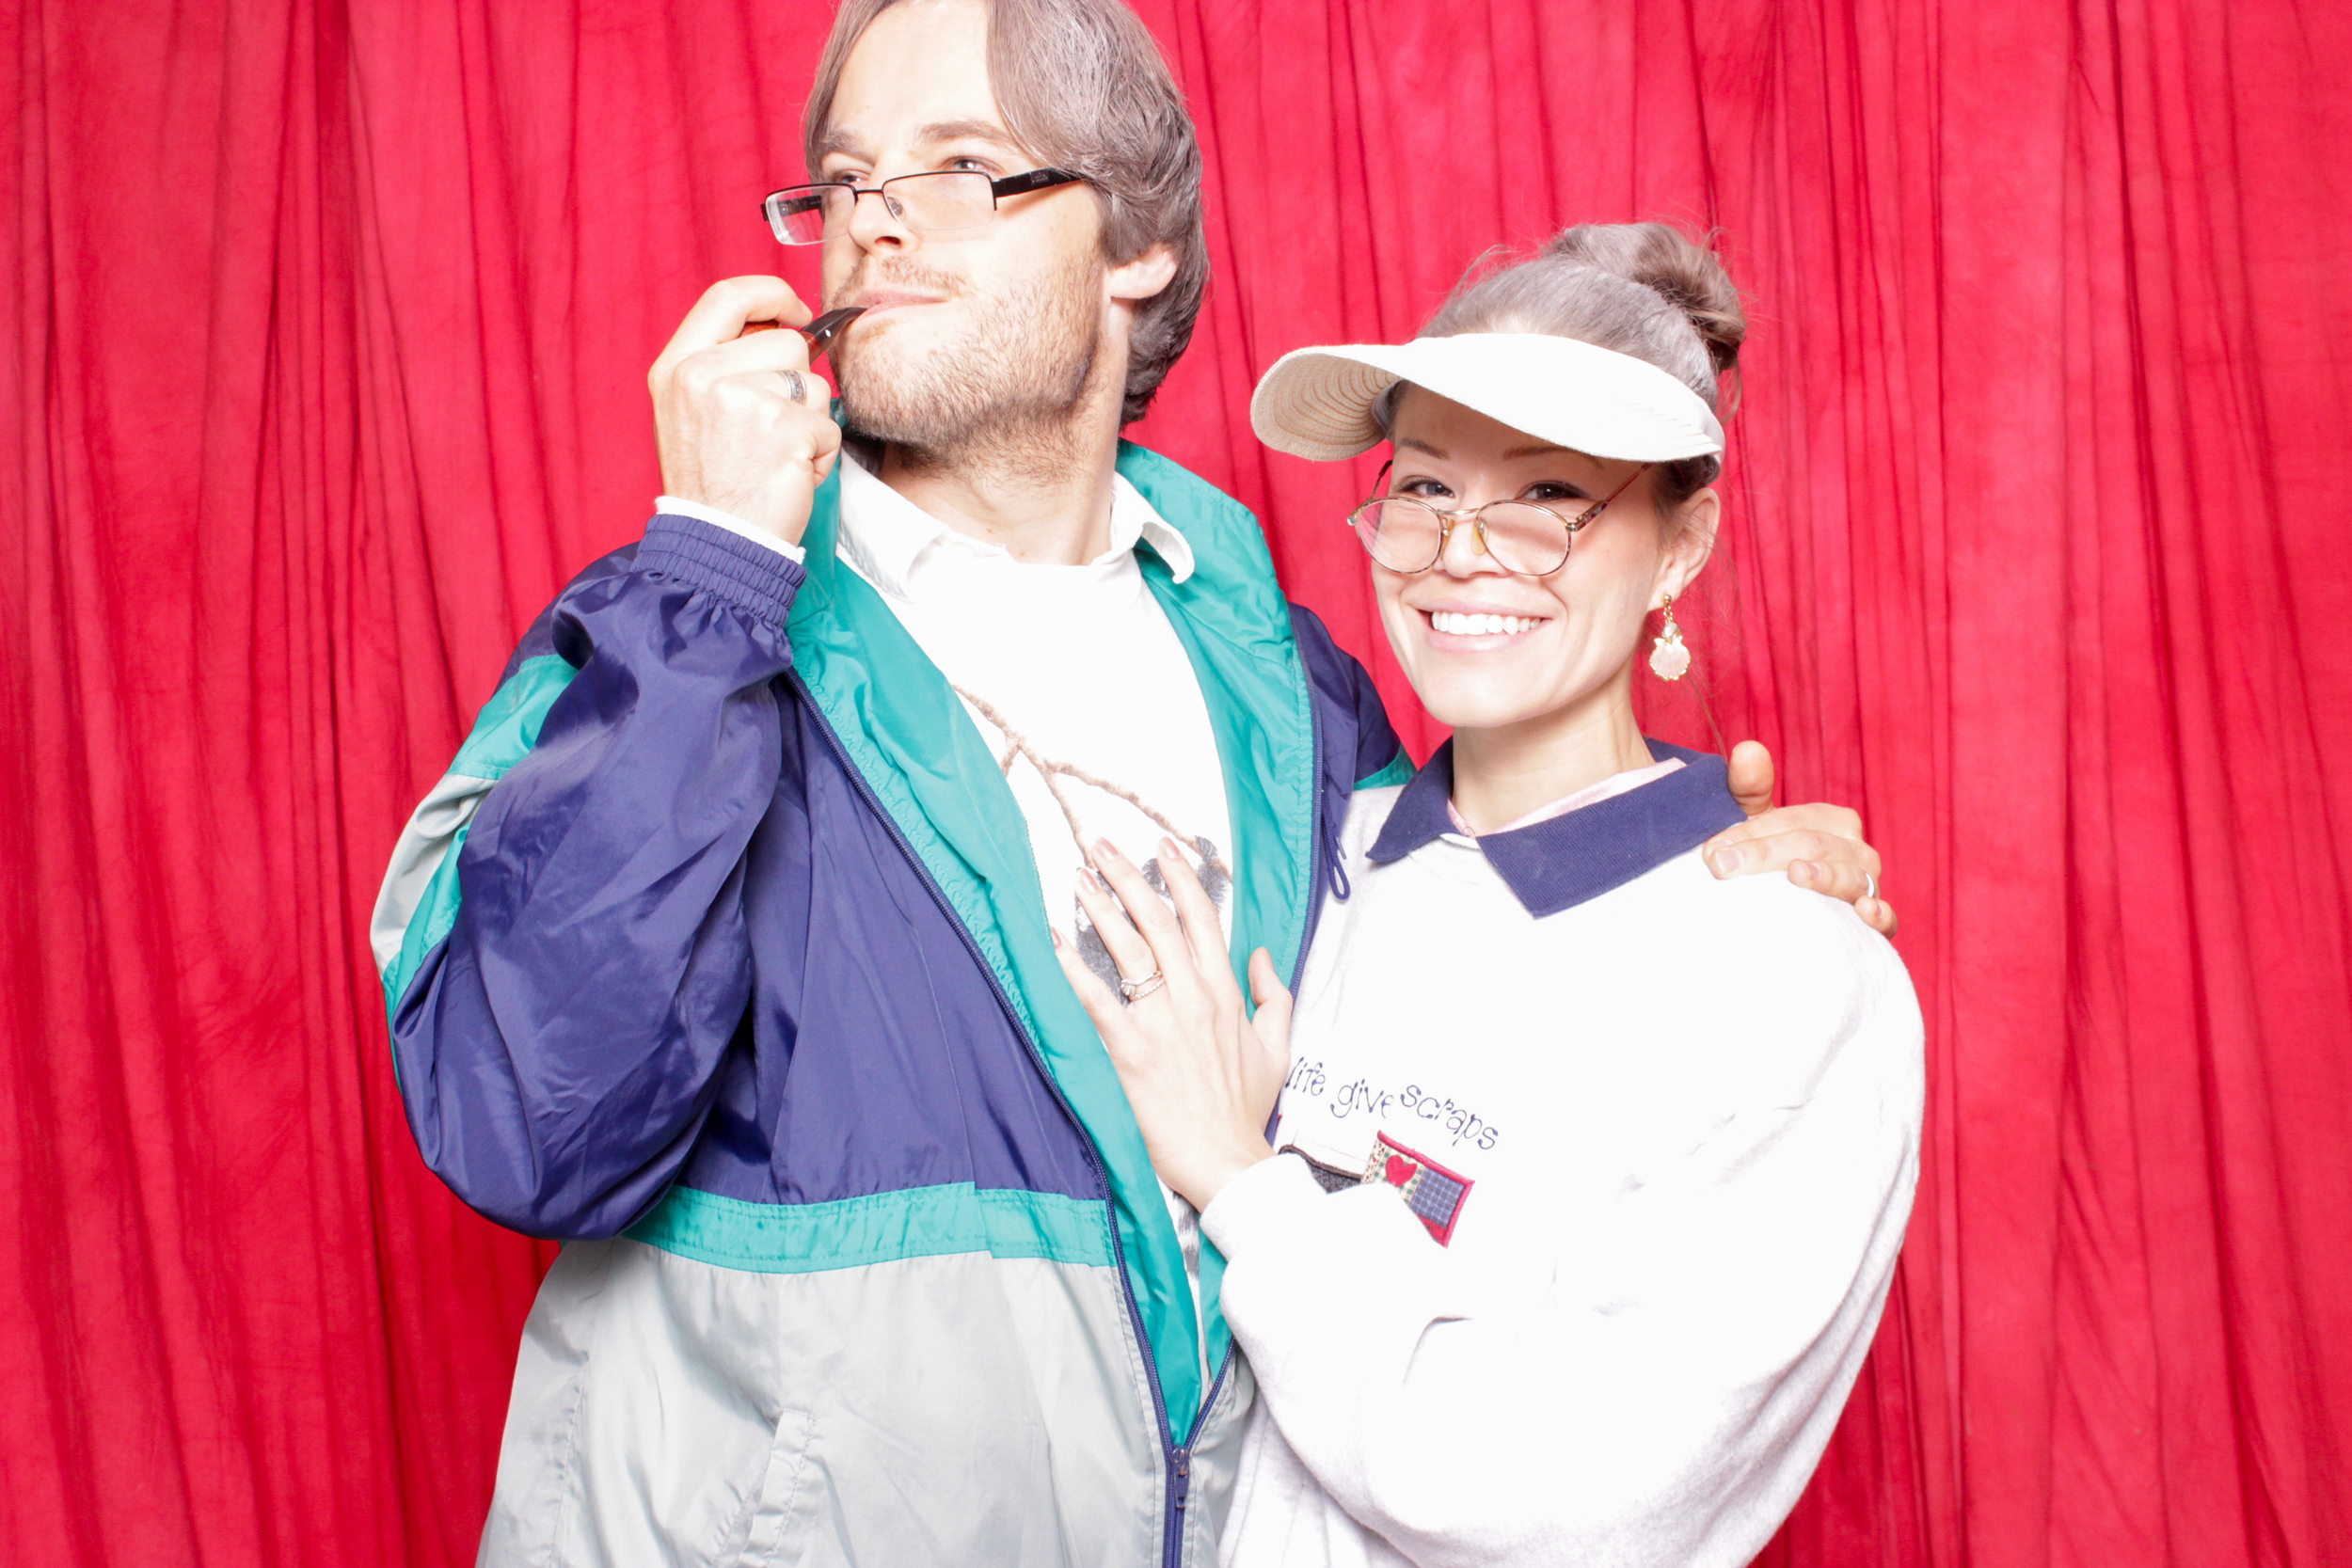 chico-photo-booth-rental-halloween-party-335.jpg